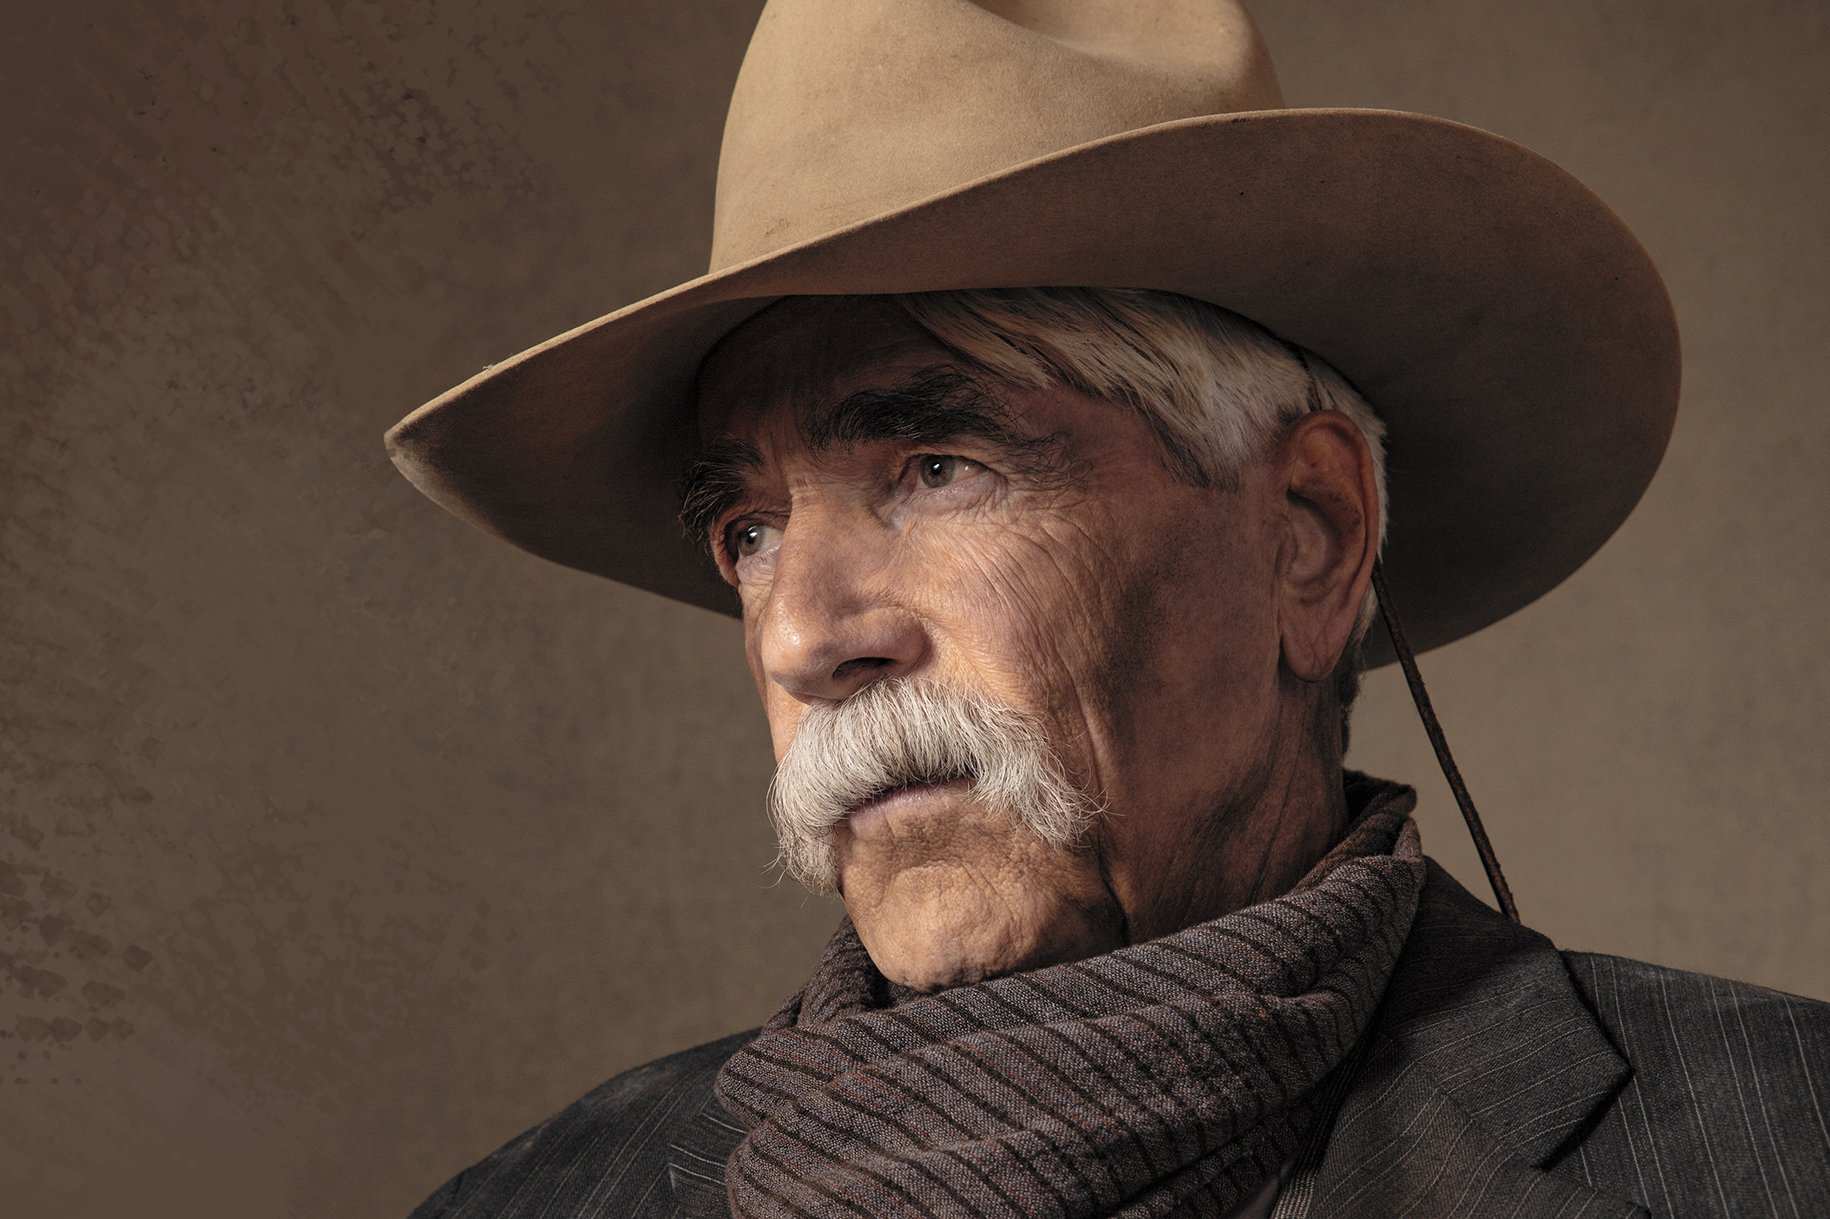 Sam Elliott on the making of Doritos' Super Bowl commercial